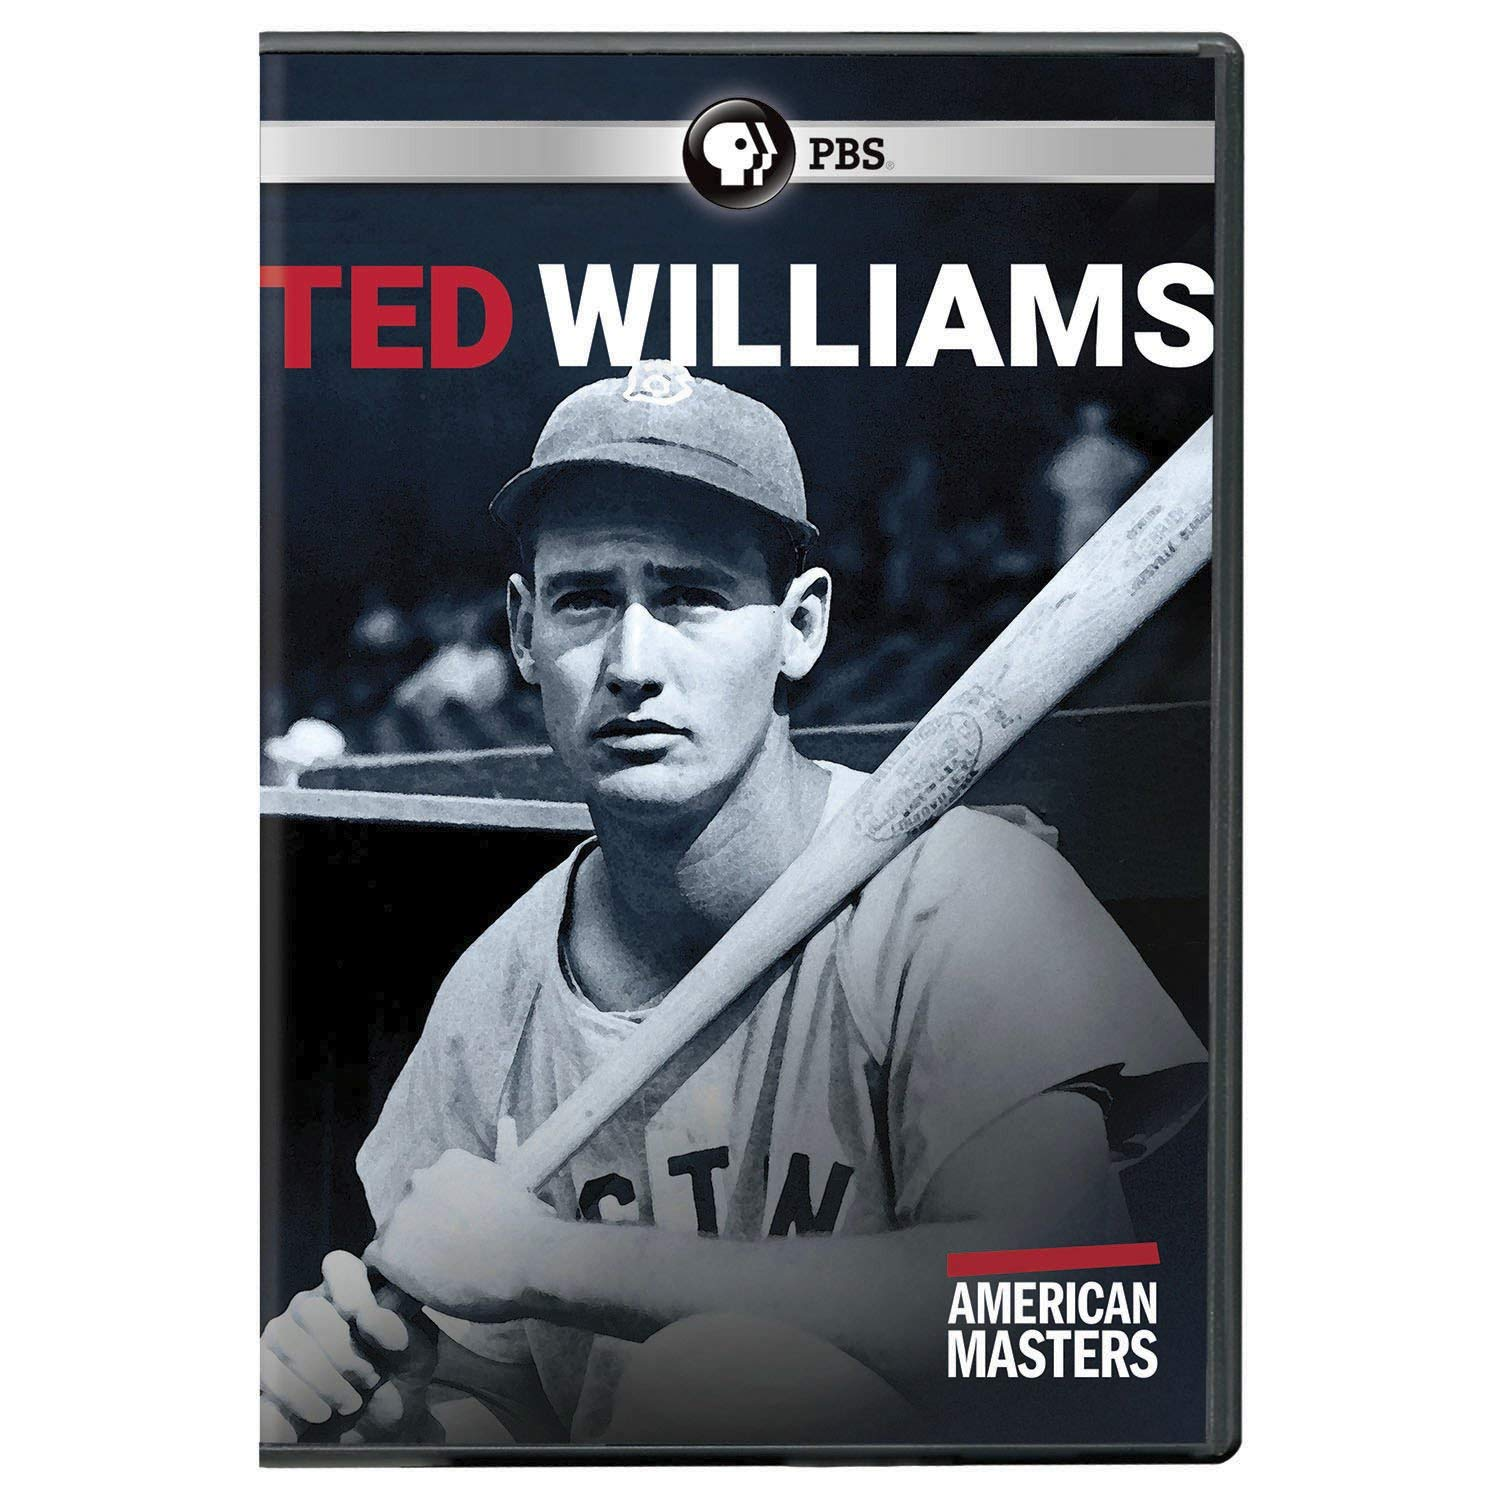 Ted Williams American Masters